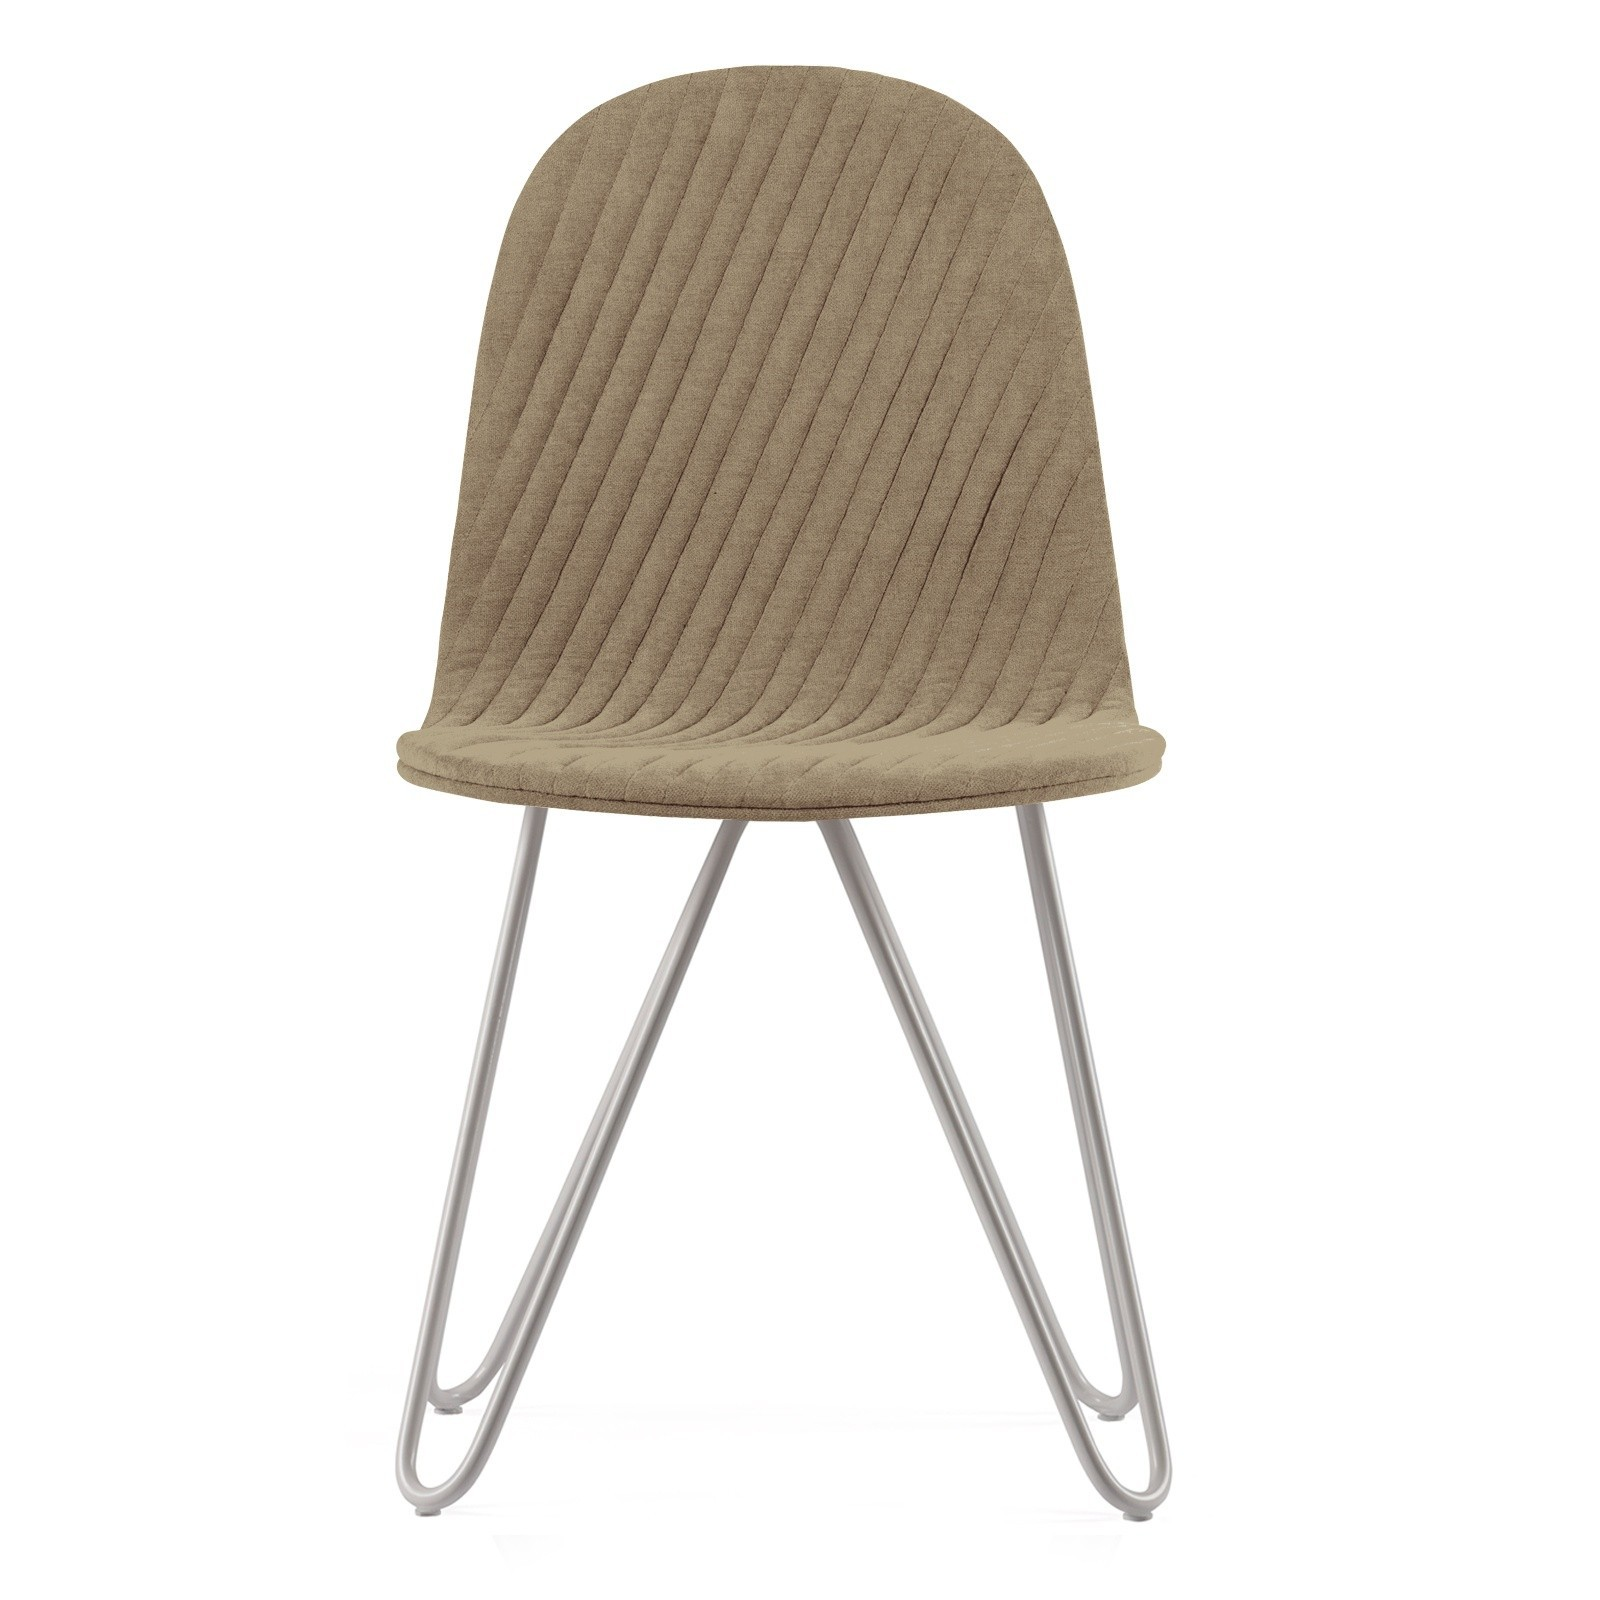 Mannequin chair - 03 - coffee